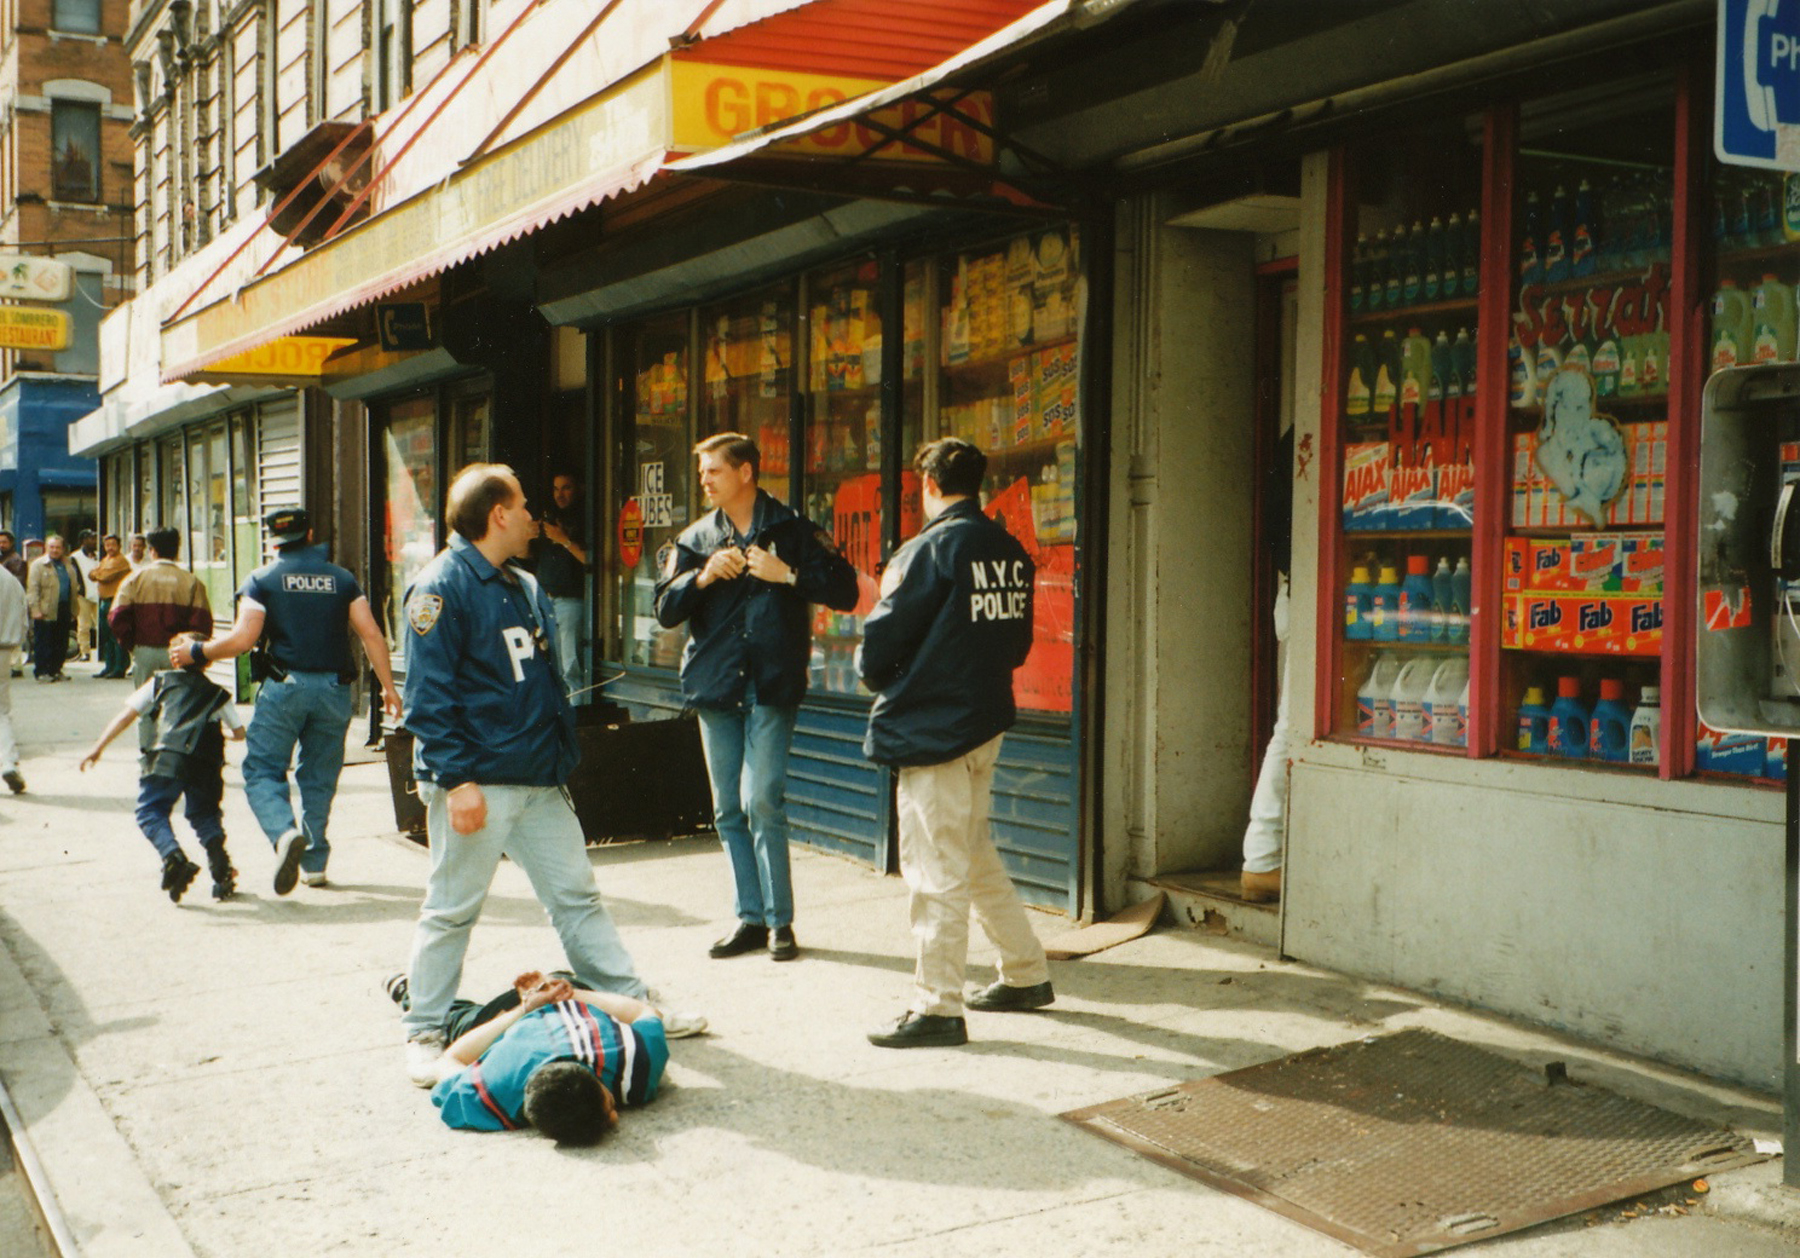 Drug arrest at 179 Essex street in 1995. Typical example of a neighbourhood grocery store whose main source of income was selling hard drugs. The Lower East Side was one of the most economically profitable and open public drug markets in America and probably the world. Drugs were sold openly all over the minority section of the community.